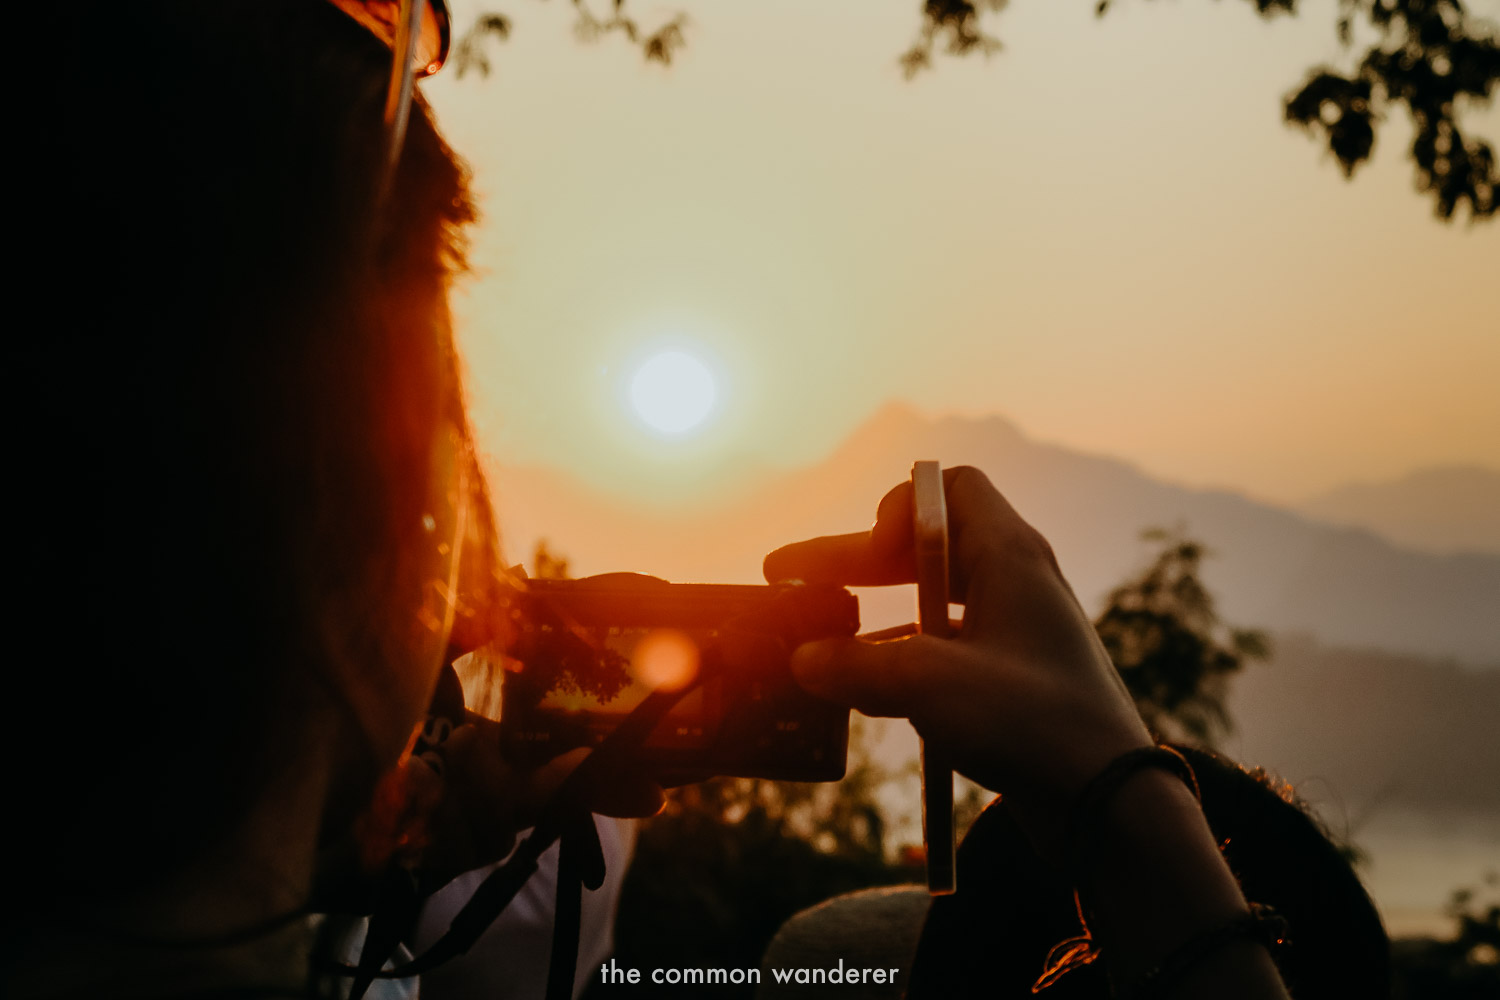 Watching sunset from Mount Phousi is one of the best things to do in Laos